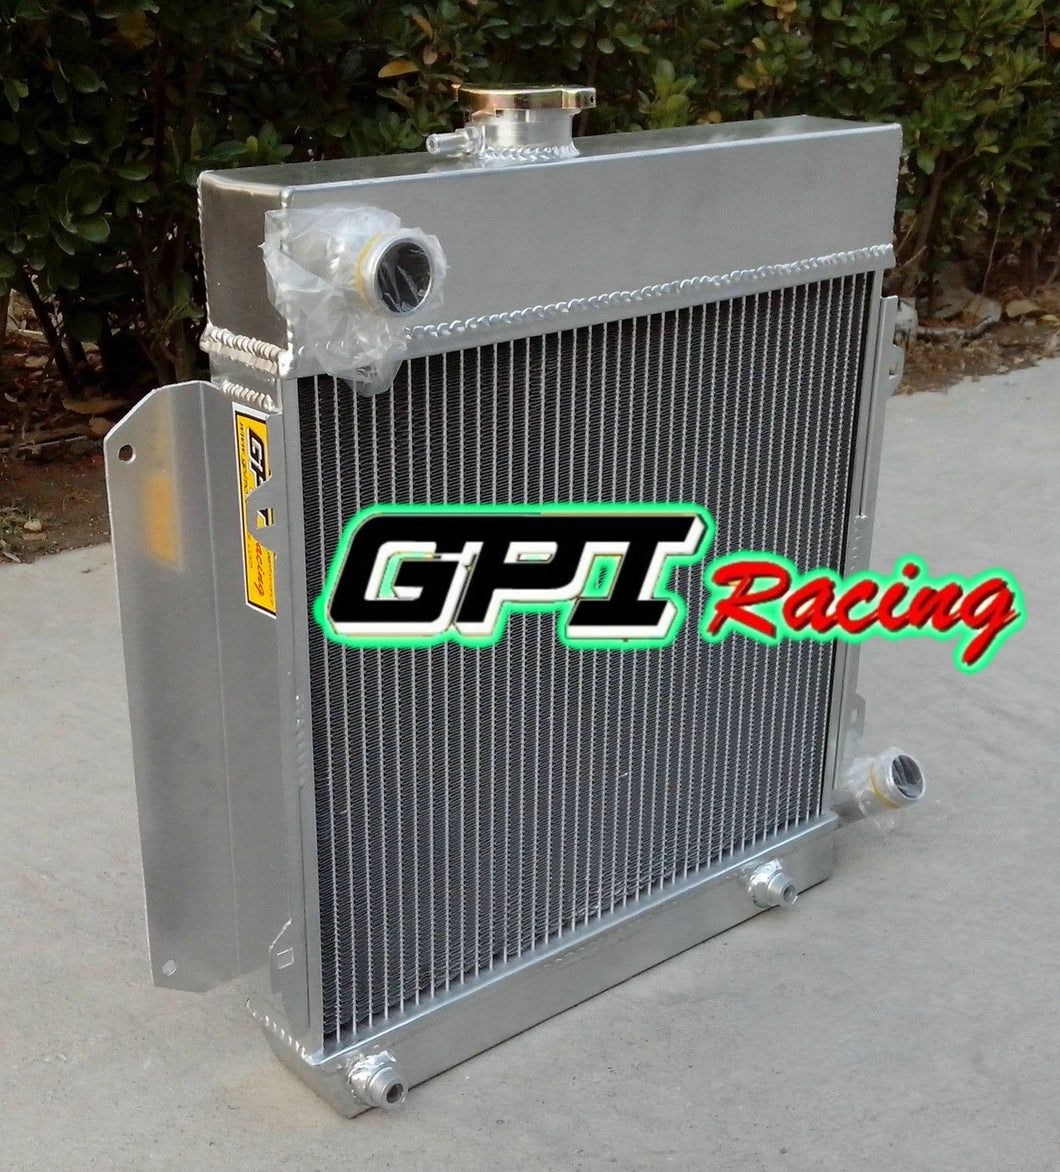 ALUMINUM RADIATOR FOR BMW E10 2002/1802/1602/1600/1502 AT 1966-1977 67 42mm CORE